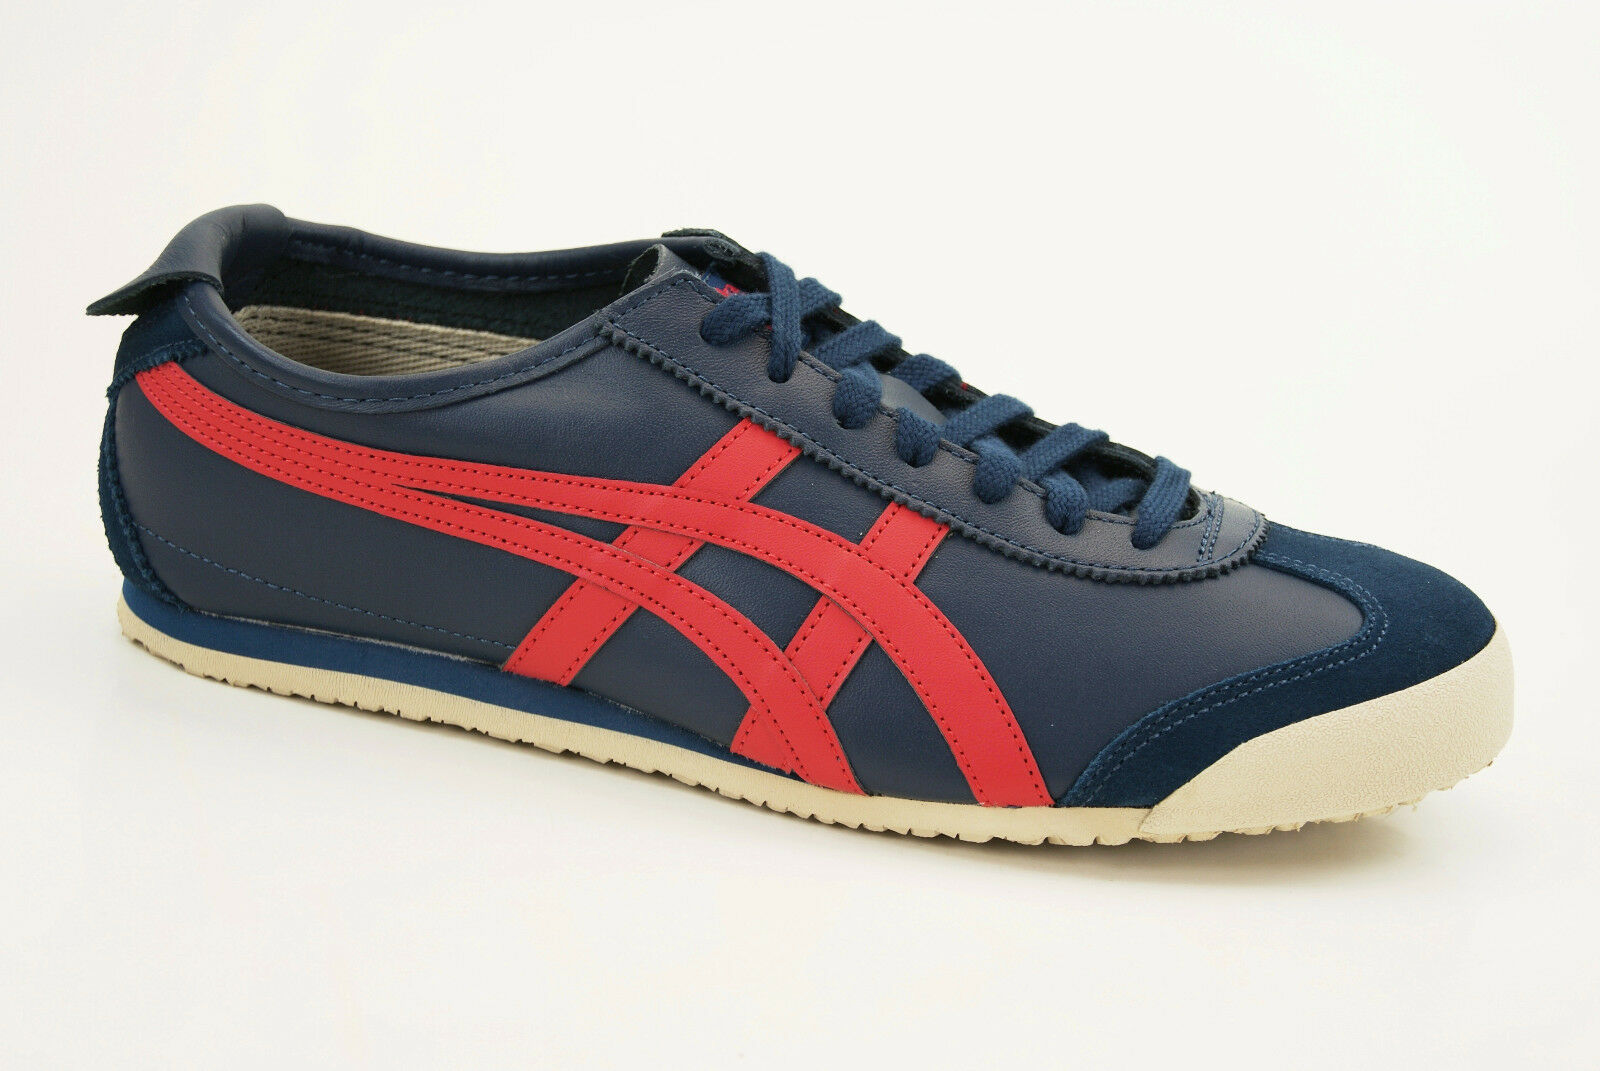 Onitsuka Tiger by Asics Mexico 66 Sneakers Turnschuhe Herren Damen D4J2L-5823